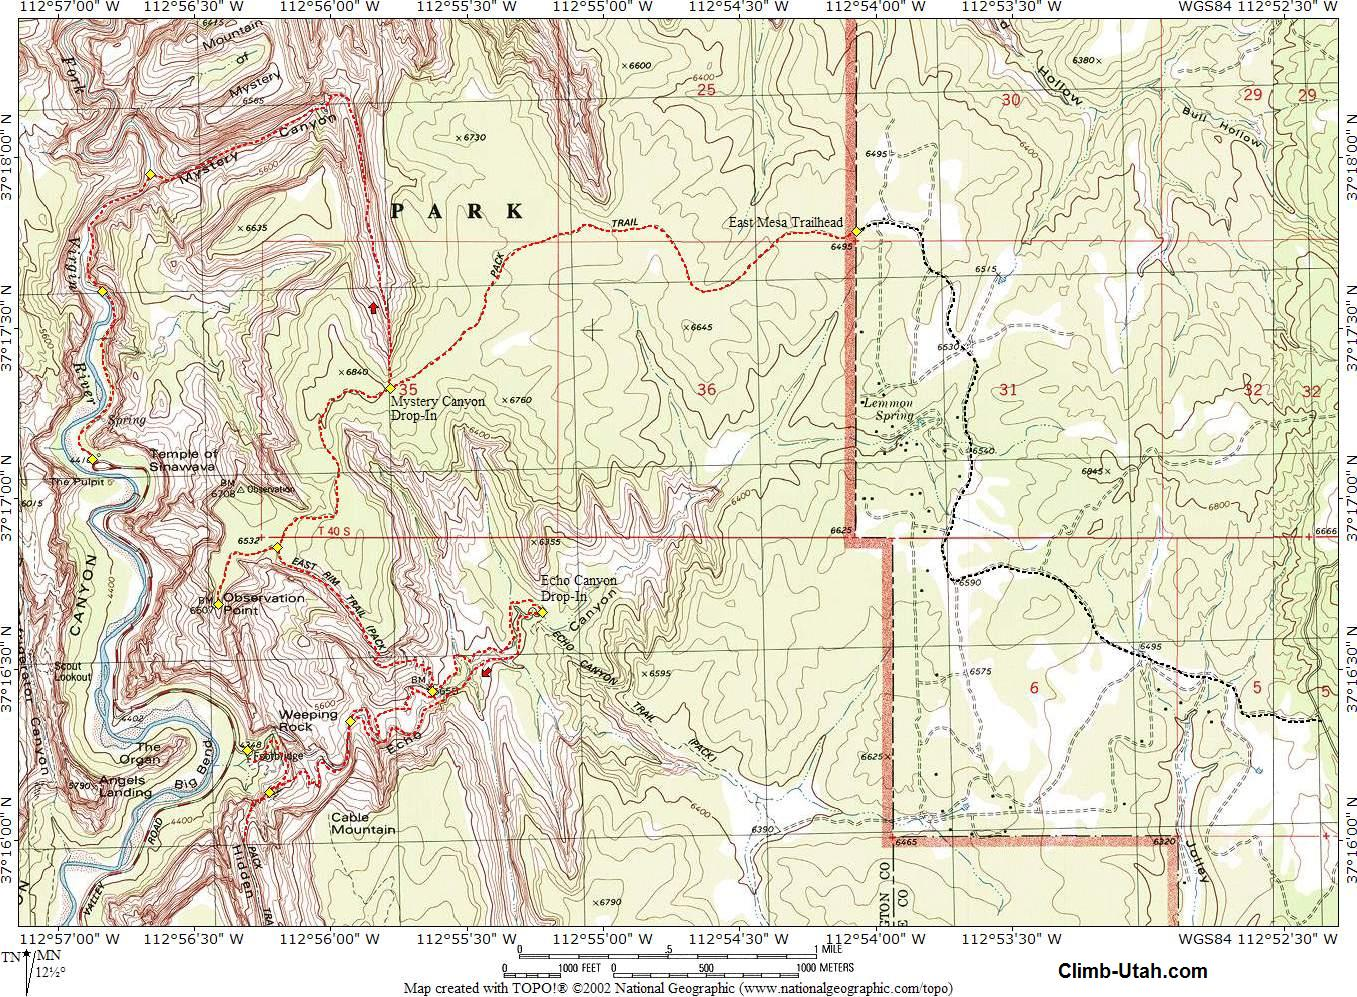 Mystery Canyon - Zion National Park - Technical Canyoneering on canyonlands topographic map, grand mesa topographic map, blue ridge parkway topographic map, uinta mountains topographic map, delaware water gap topographic map, redwood national park topographic map, zion national park temperature map, eureka topographic map, simple contour lines topographic map, coconino plateau topographic map, horseshoe canyon topographic map, zion canyon campground map, sequoia national park topographic map, browse topographic map, west rim trail topographic map, el capitan topographic map, rockville topographic map, hawaii volcanoes national park topographic map, panguitch lake topographic map, red rock canyon topographic map,